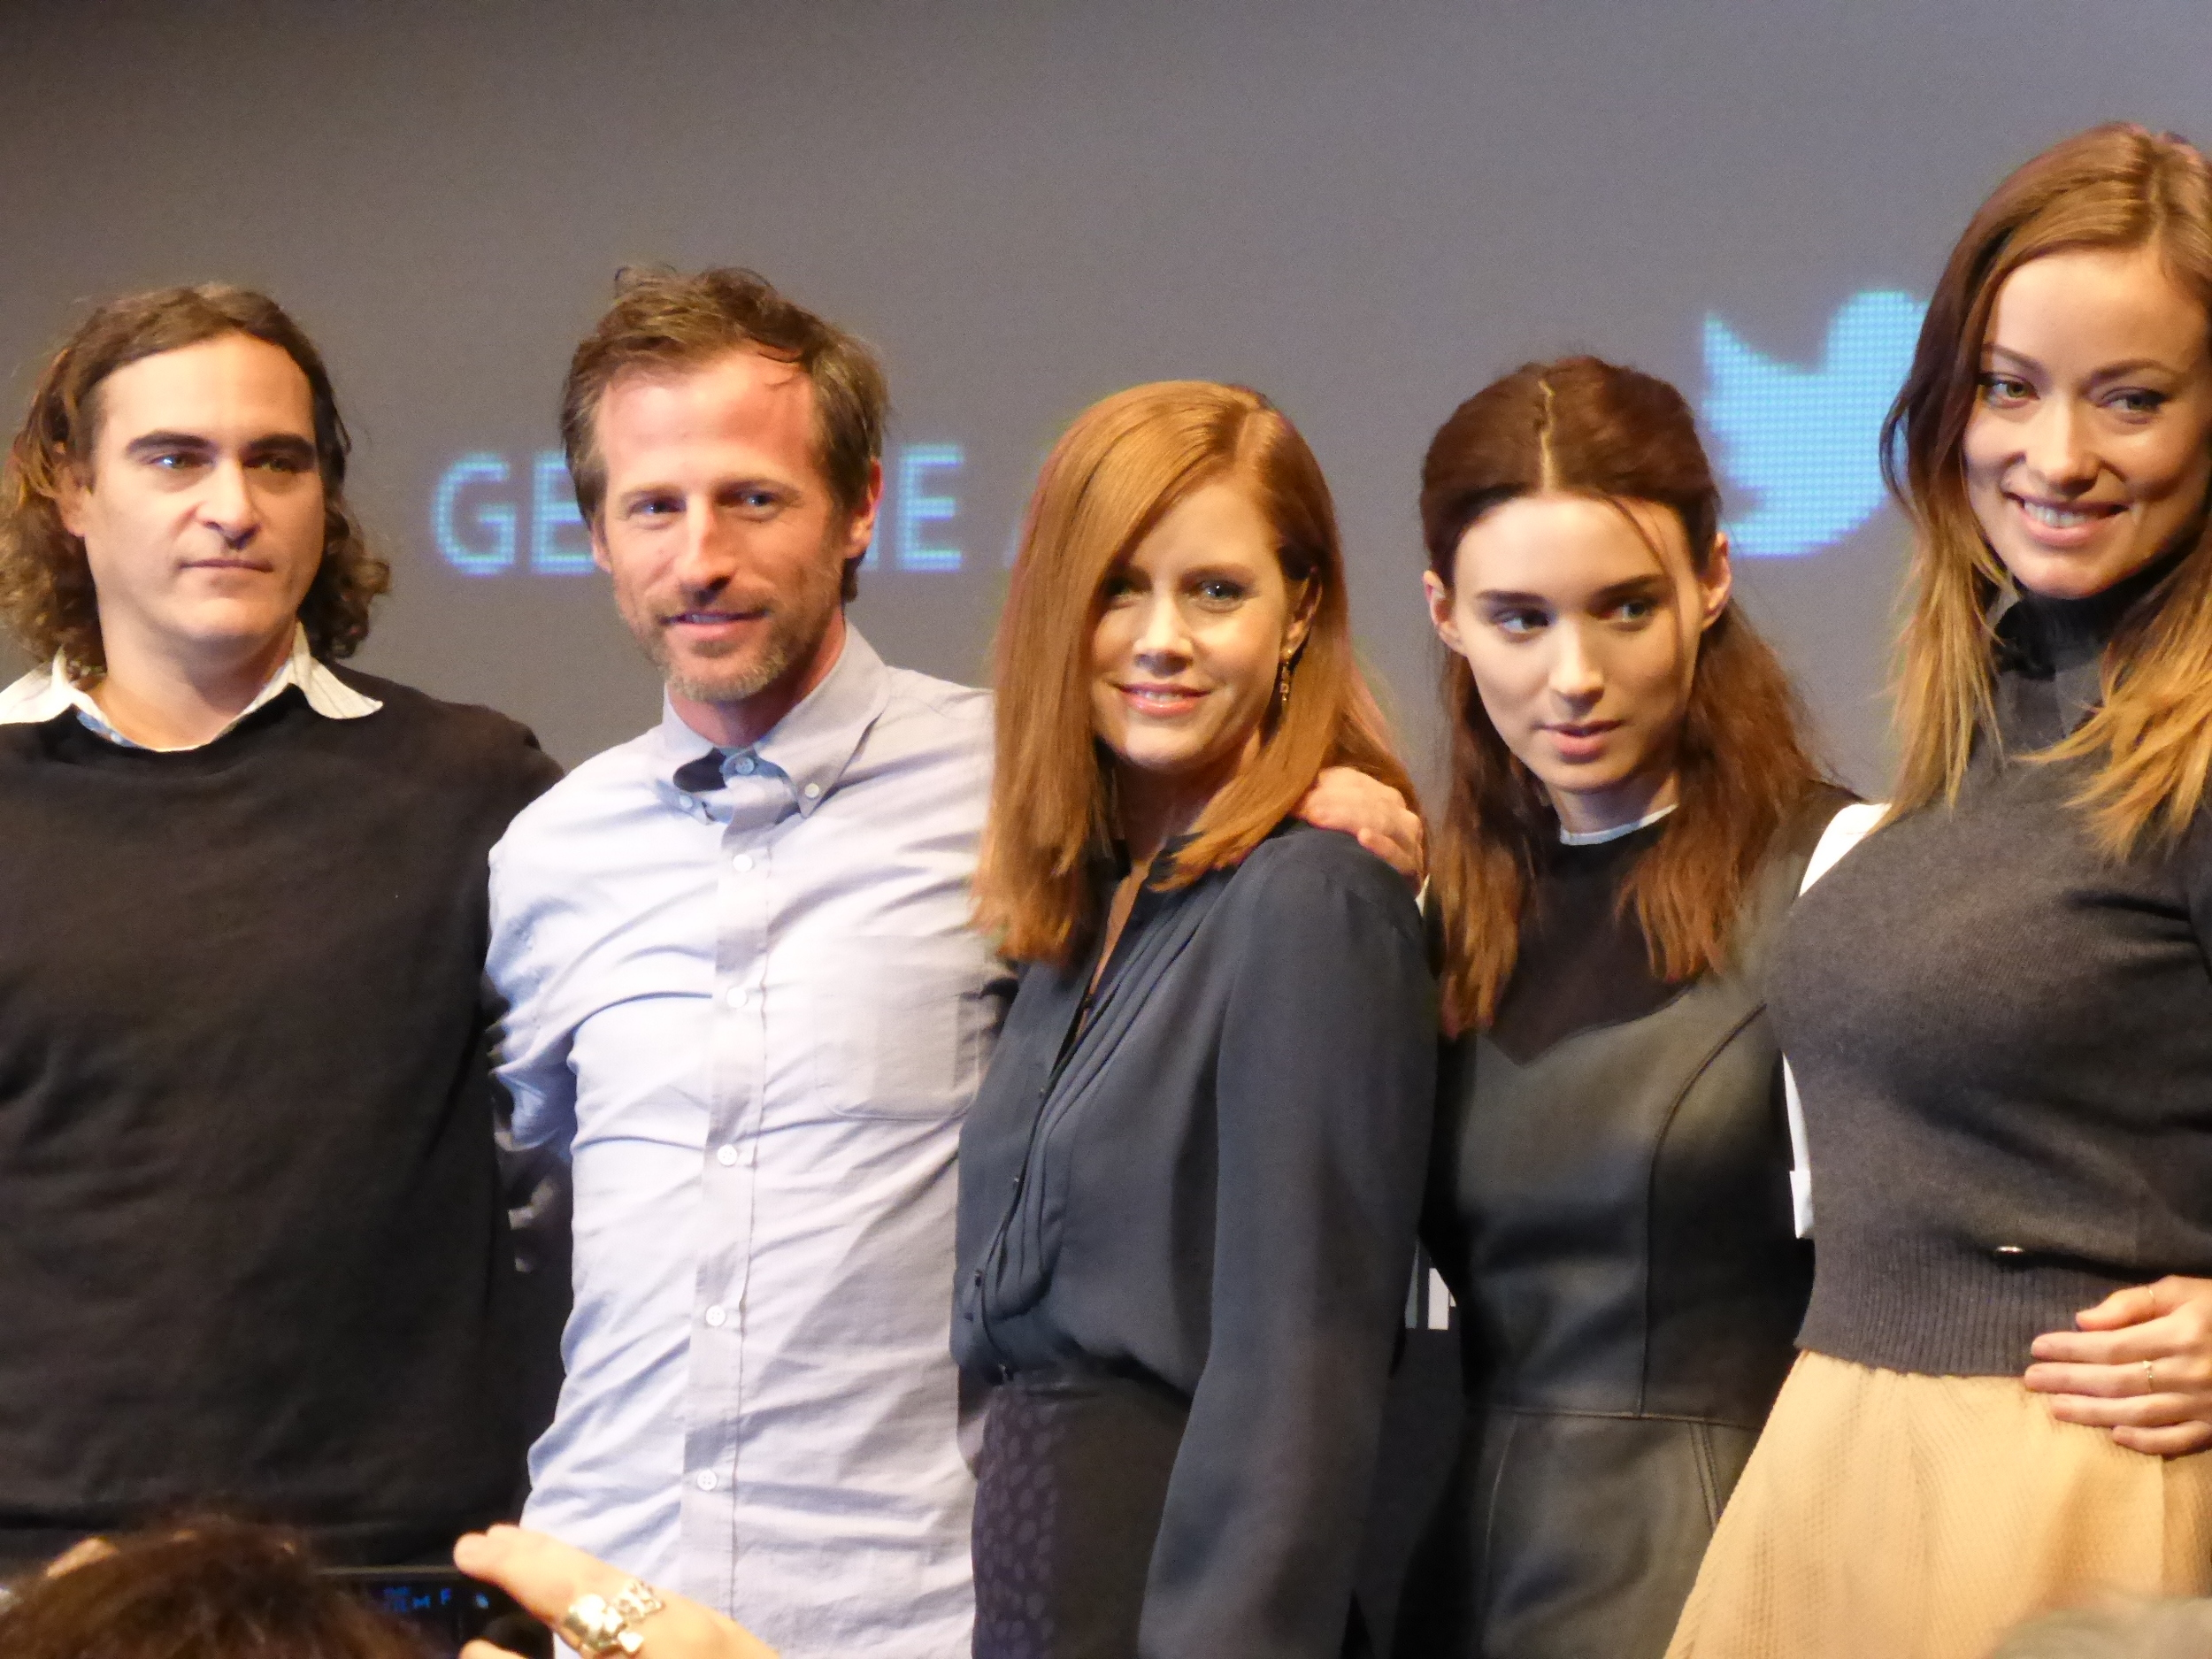 Cast of 'Her' from left to right: Joaquin Phoenix, Director Spike Jonze, Amy Adams, Rooney Mara, Olivia Wilde